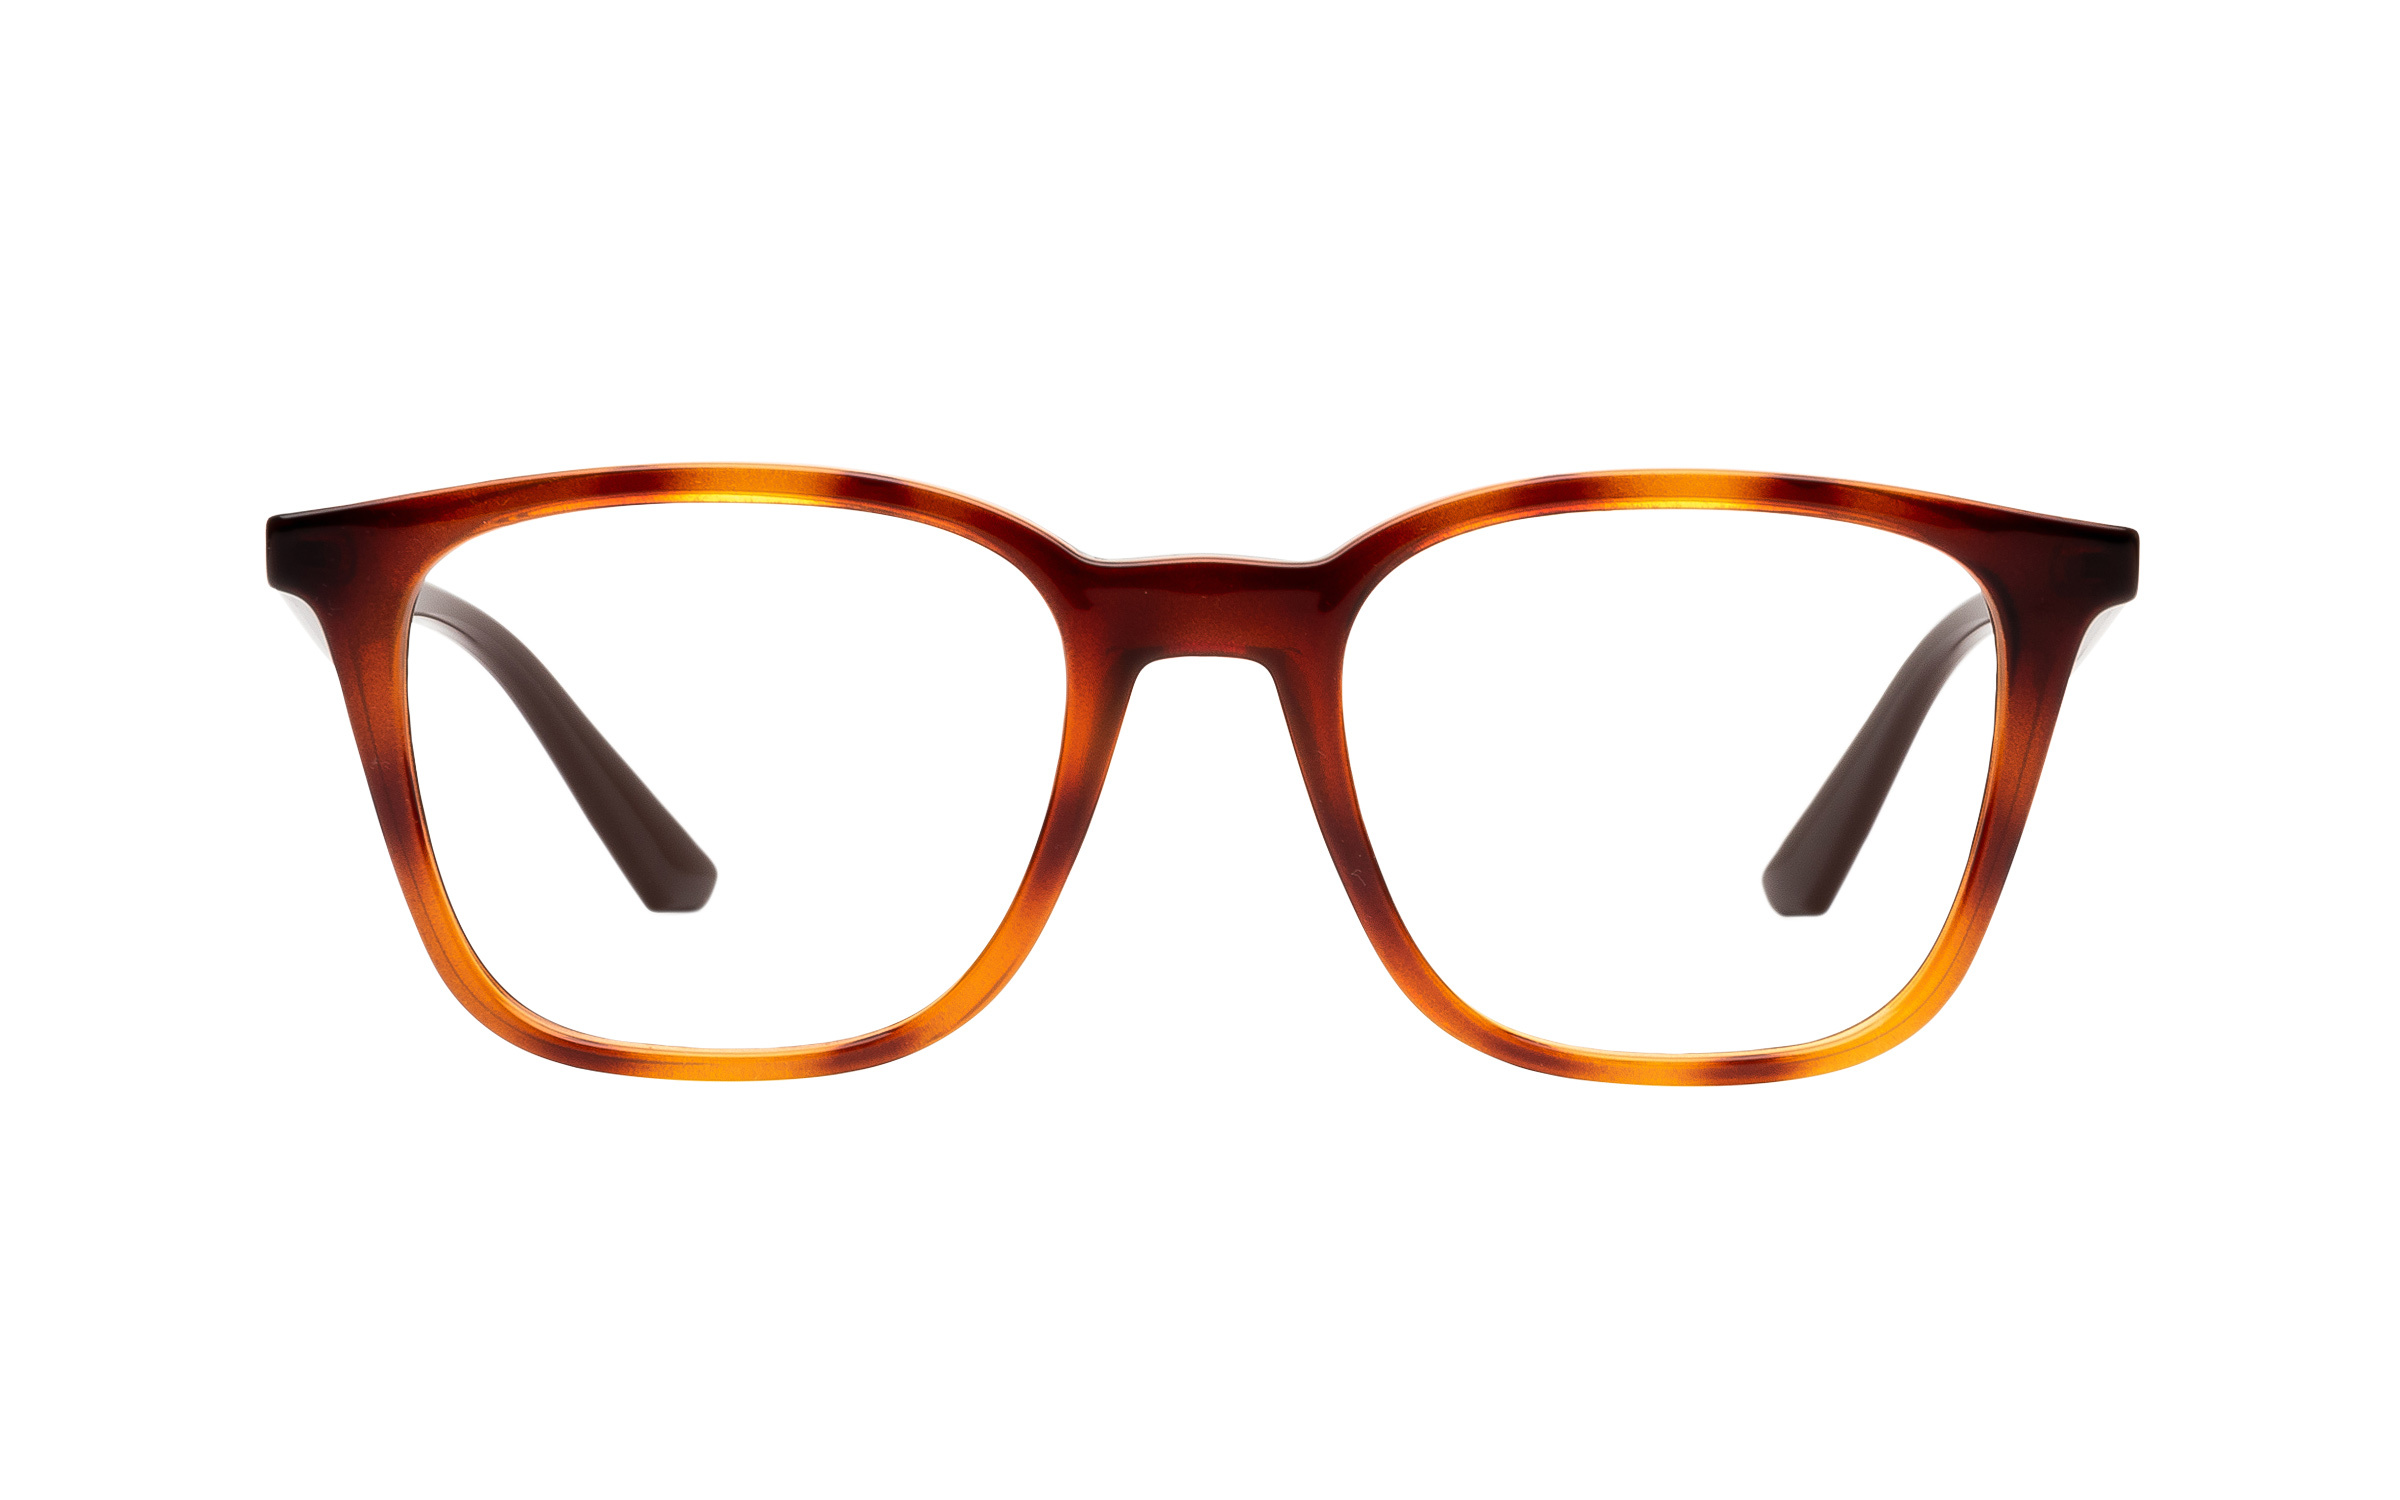 Luxottica Ray-Ban RX7177 5992 (49) Eyeglasses and Frame in Tortoise - Online Coastal